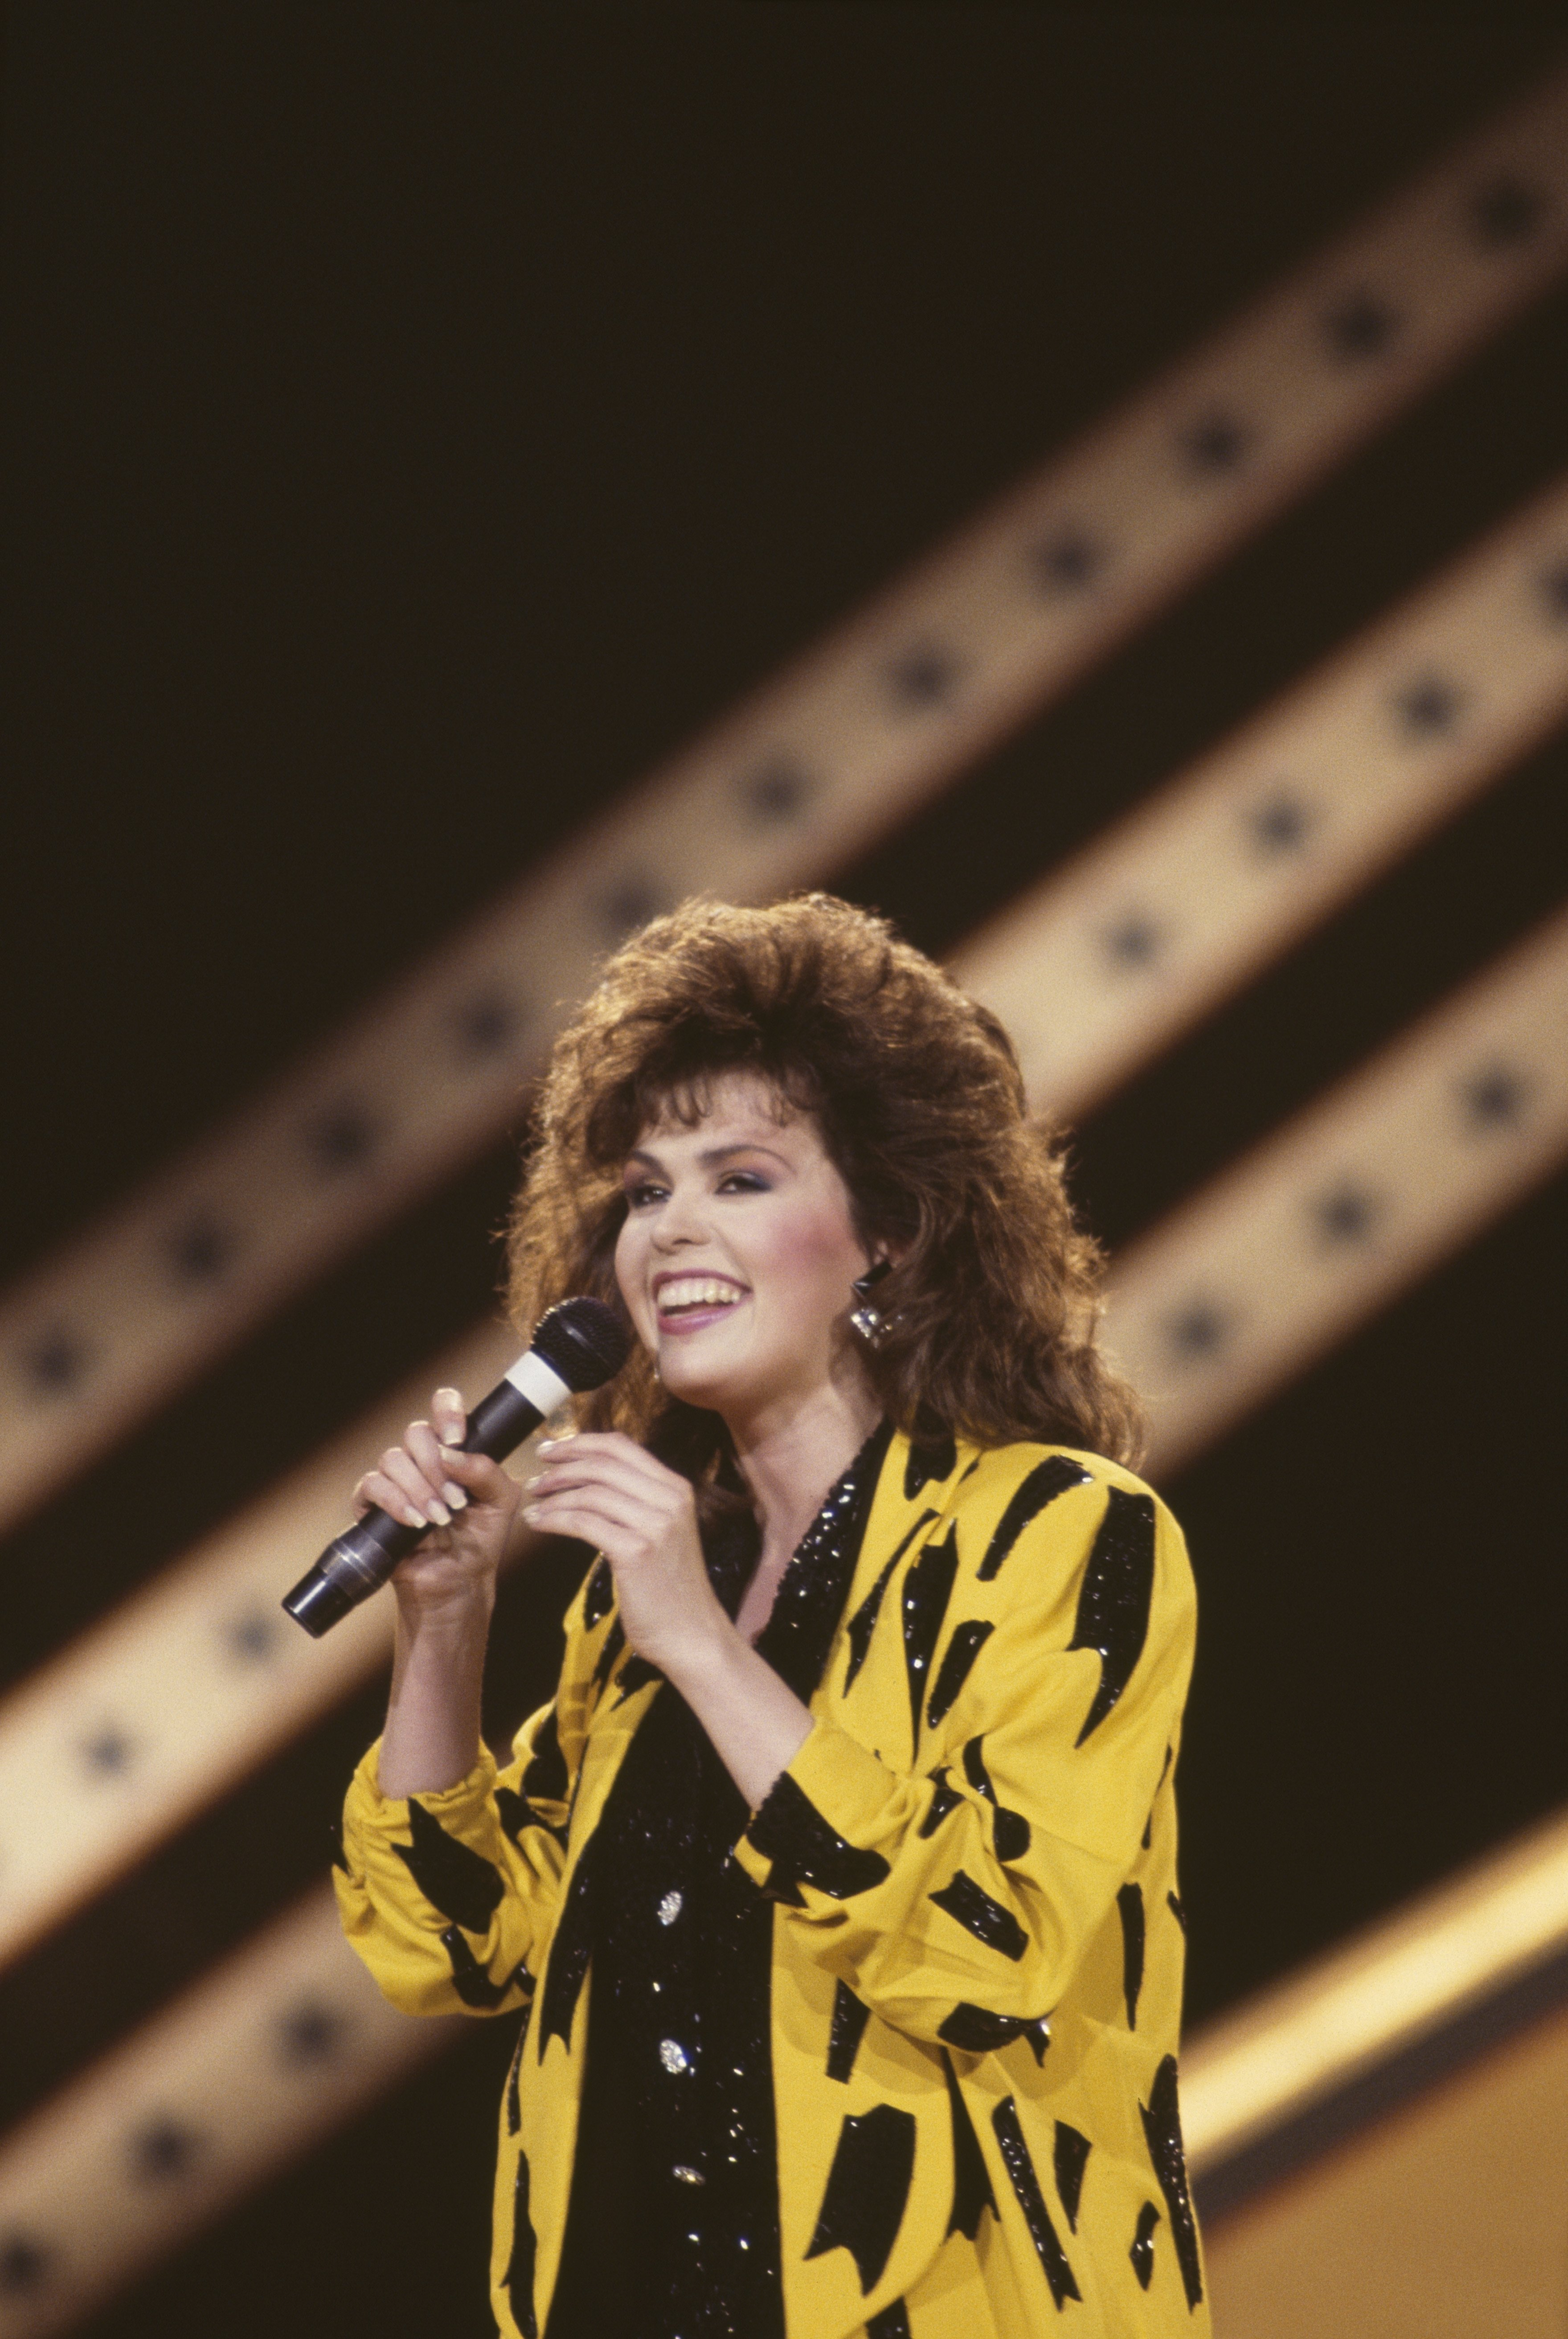 Image Credits: Getty Images / David Redfern / Redferns | Marie Osmond, US singer and musician, singing into a microphone during a live concert performance, on stage at the International Festival of Country Music, held at Wembley Arena, London, England, Great Britain, 1 April 1986.